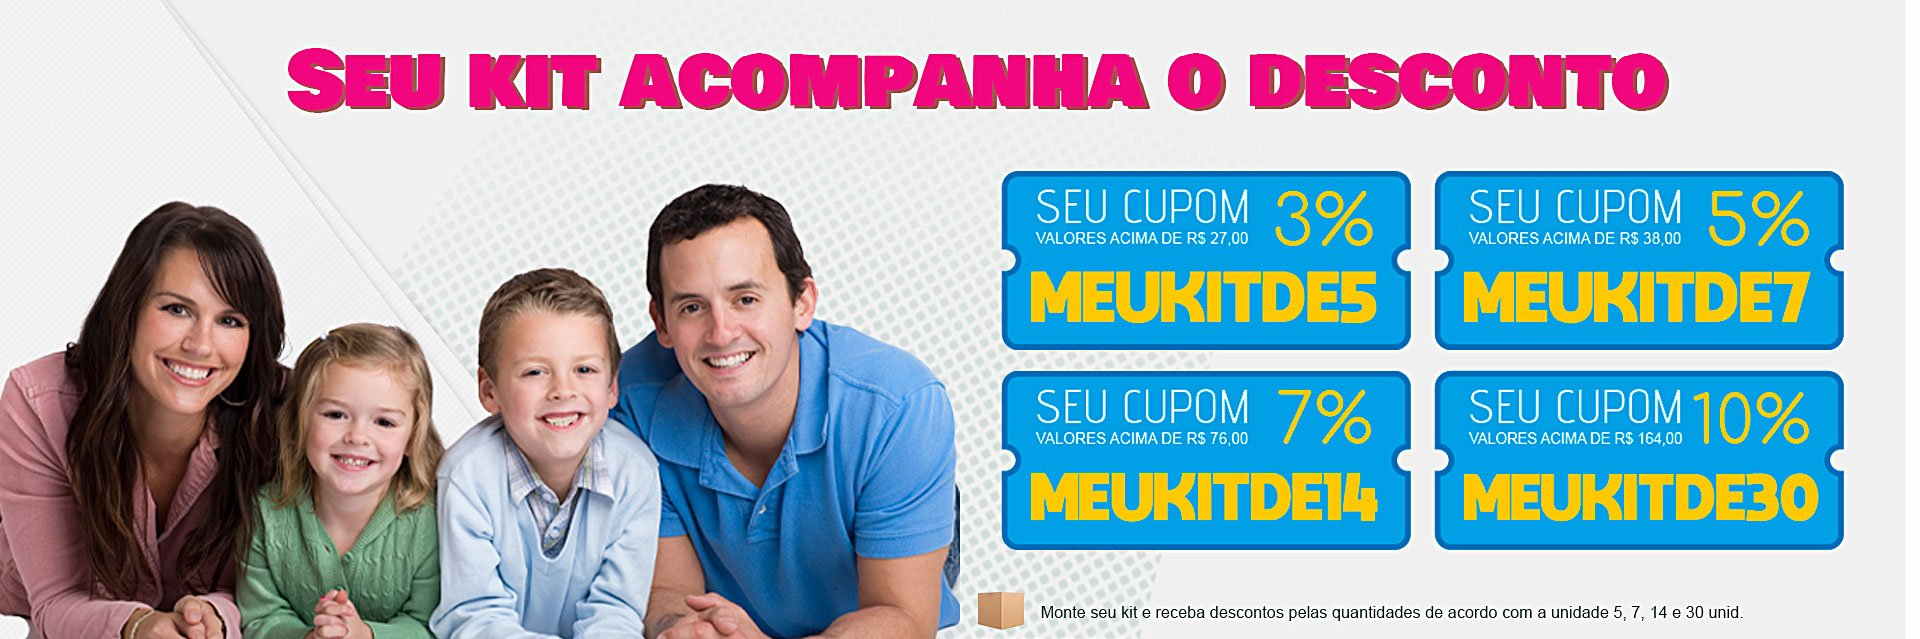 Cupon-hd